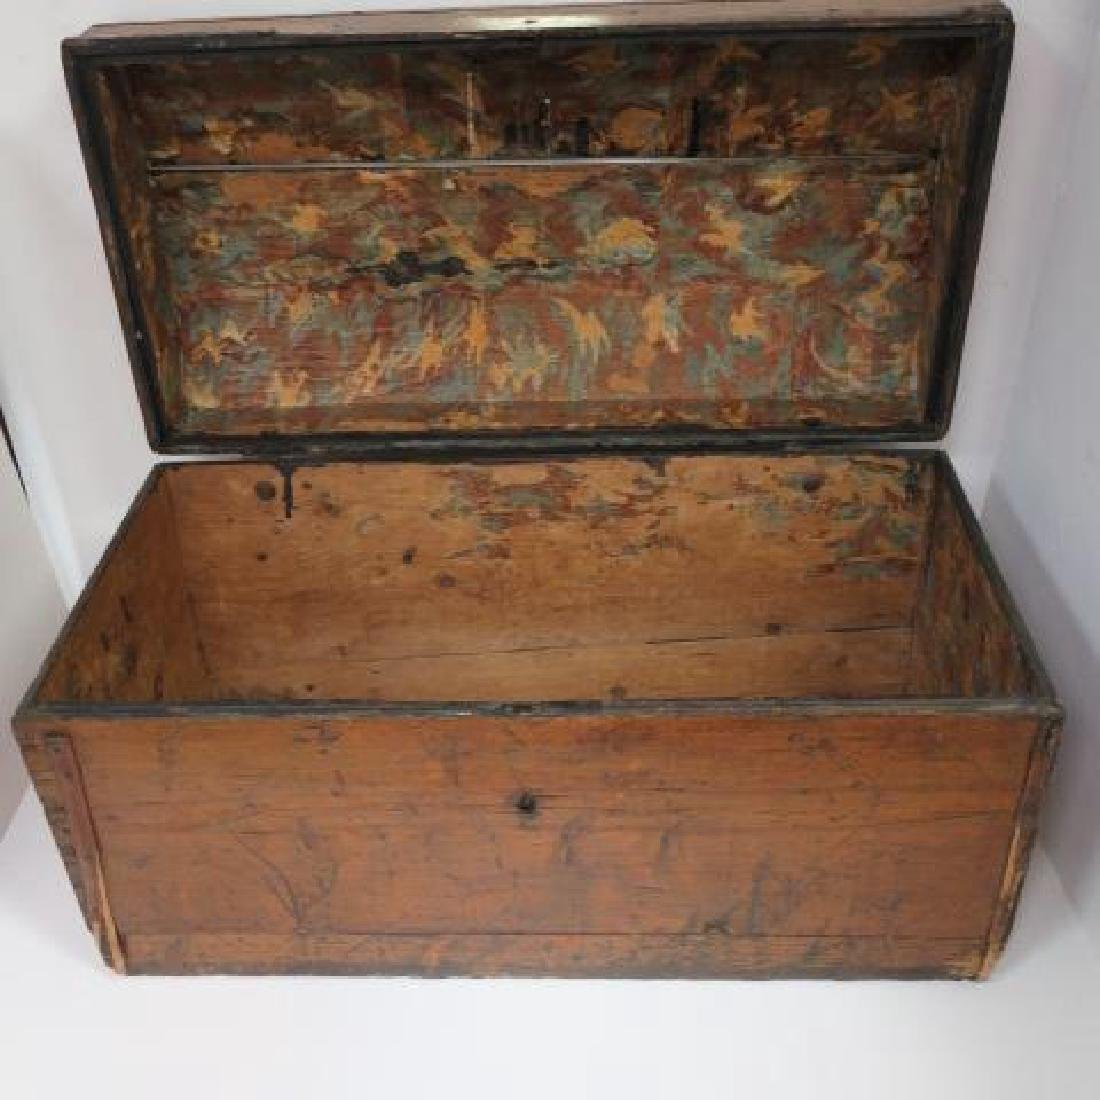 18th C. Oak Dome Top Storage Chest: